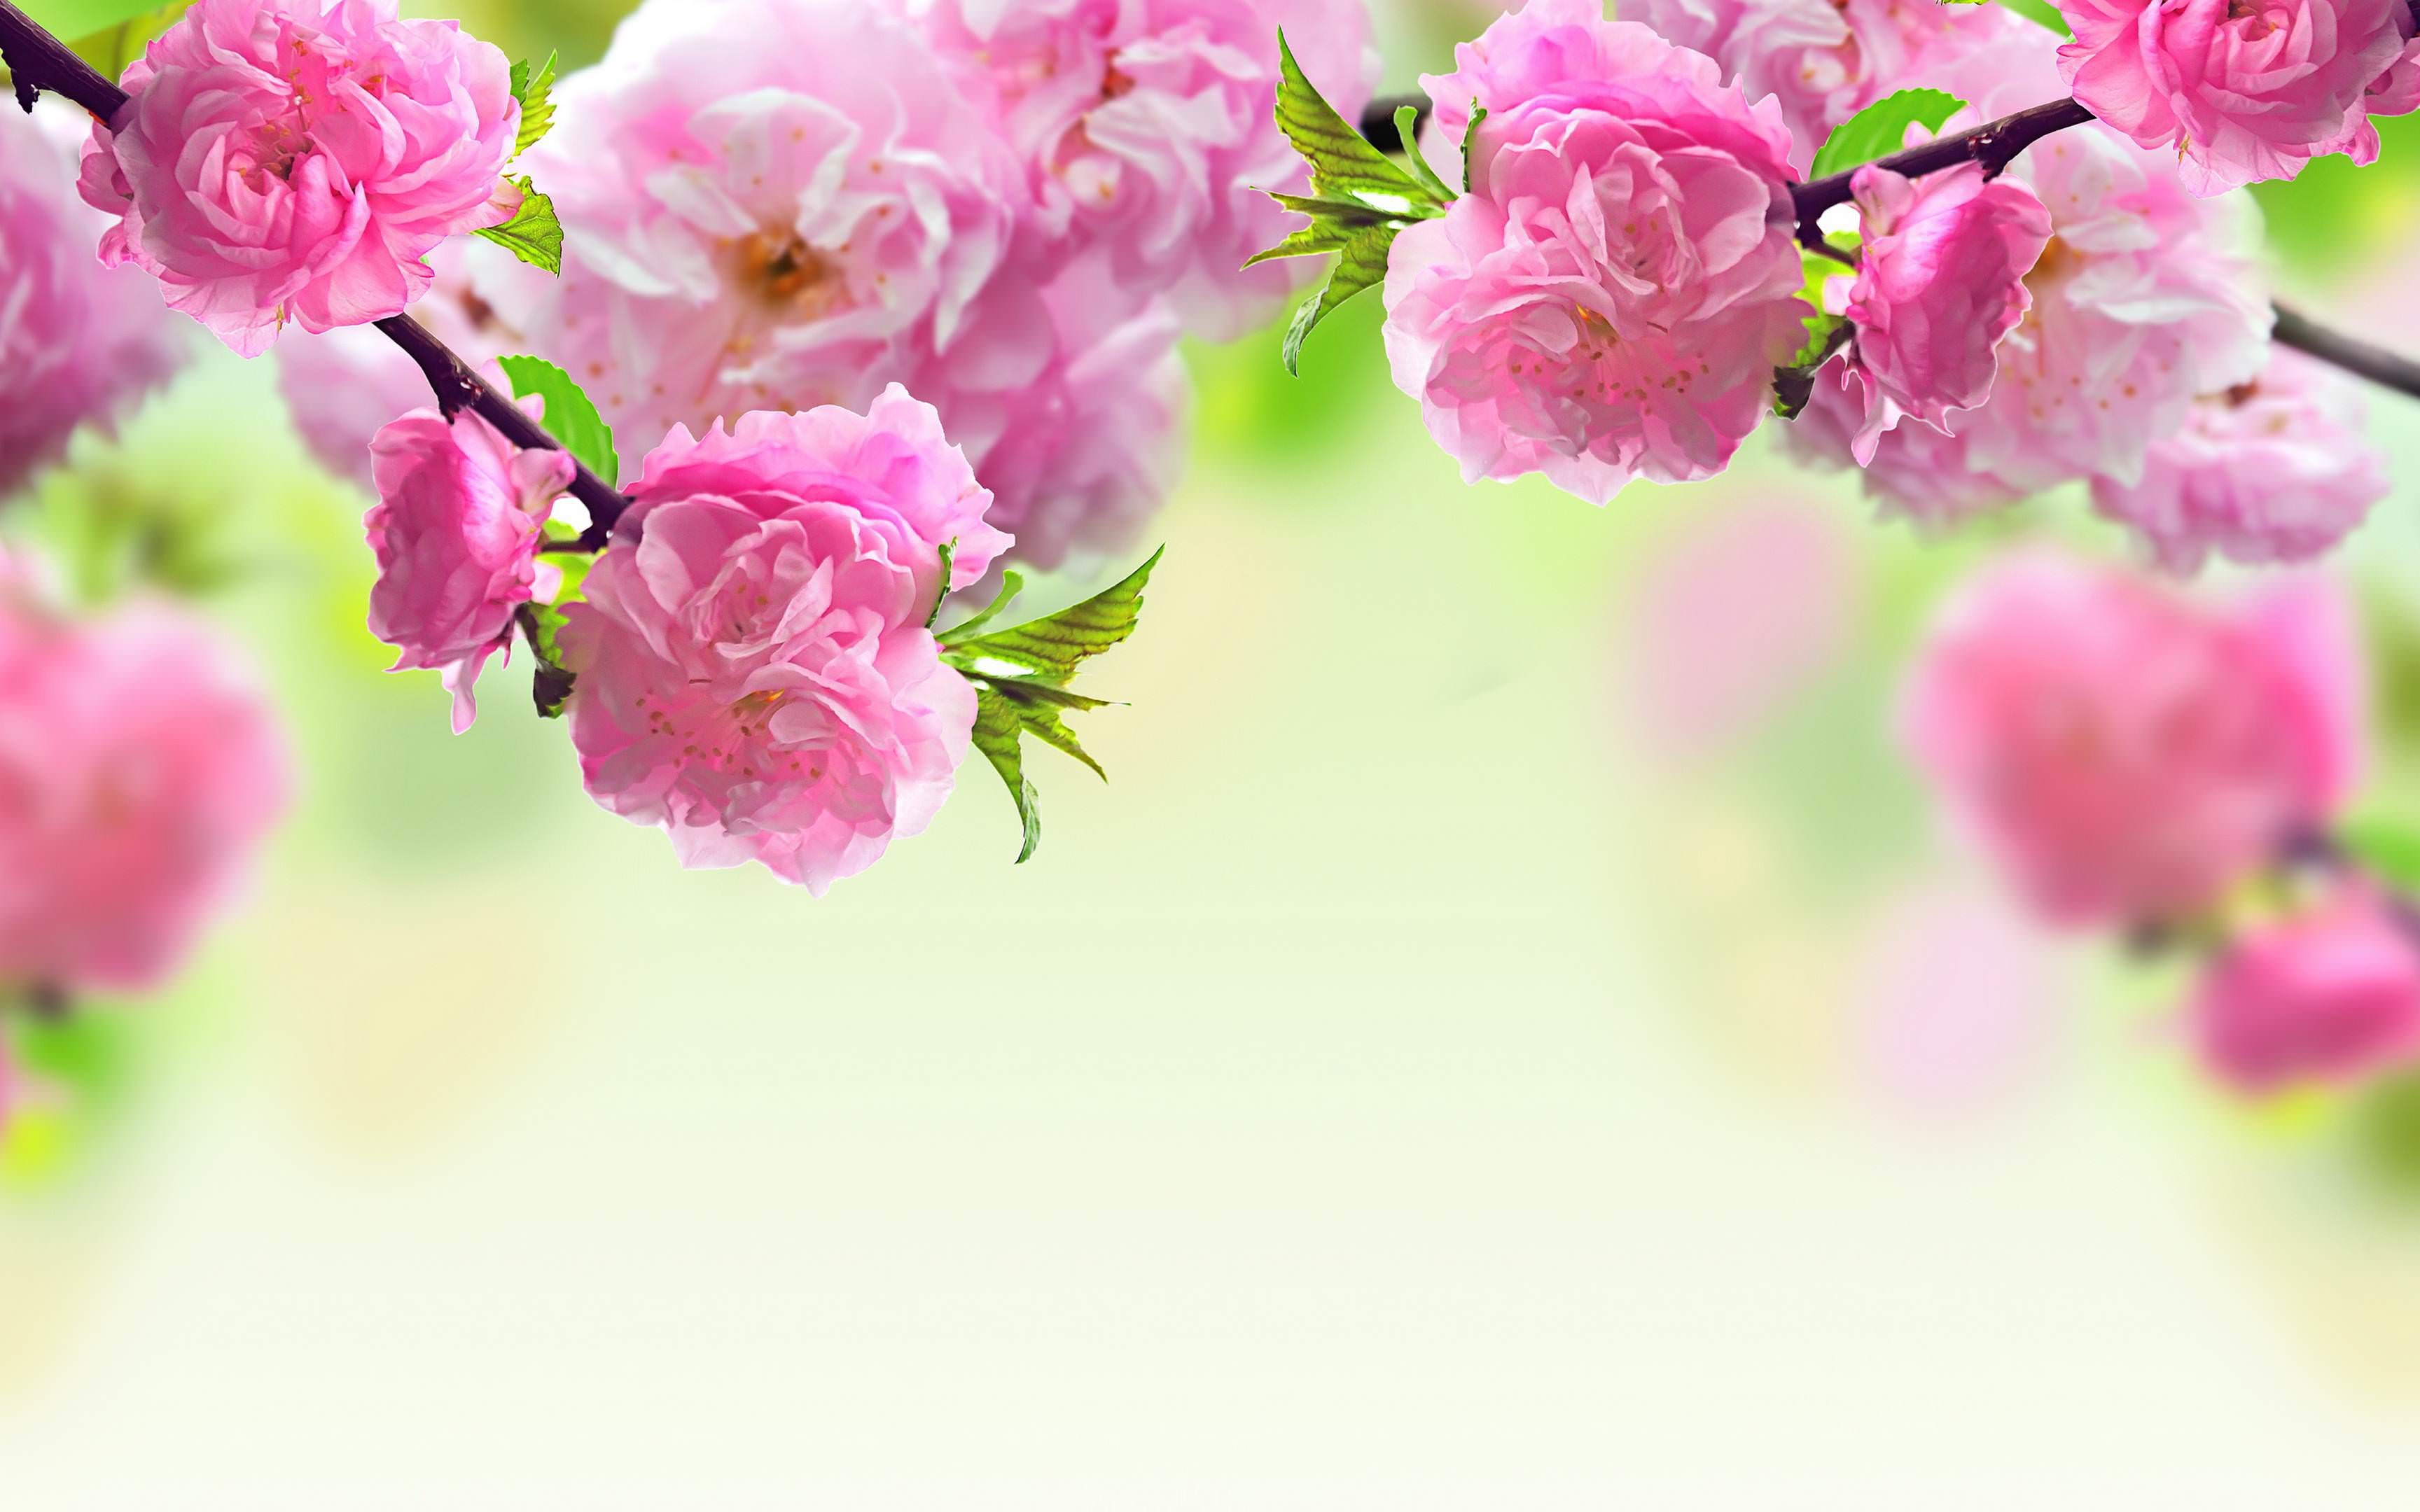 Rose Flowers Background 51 Images